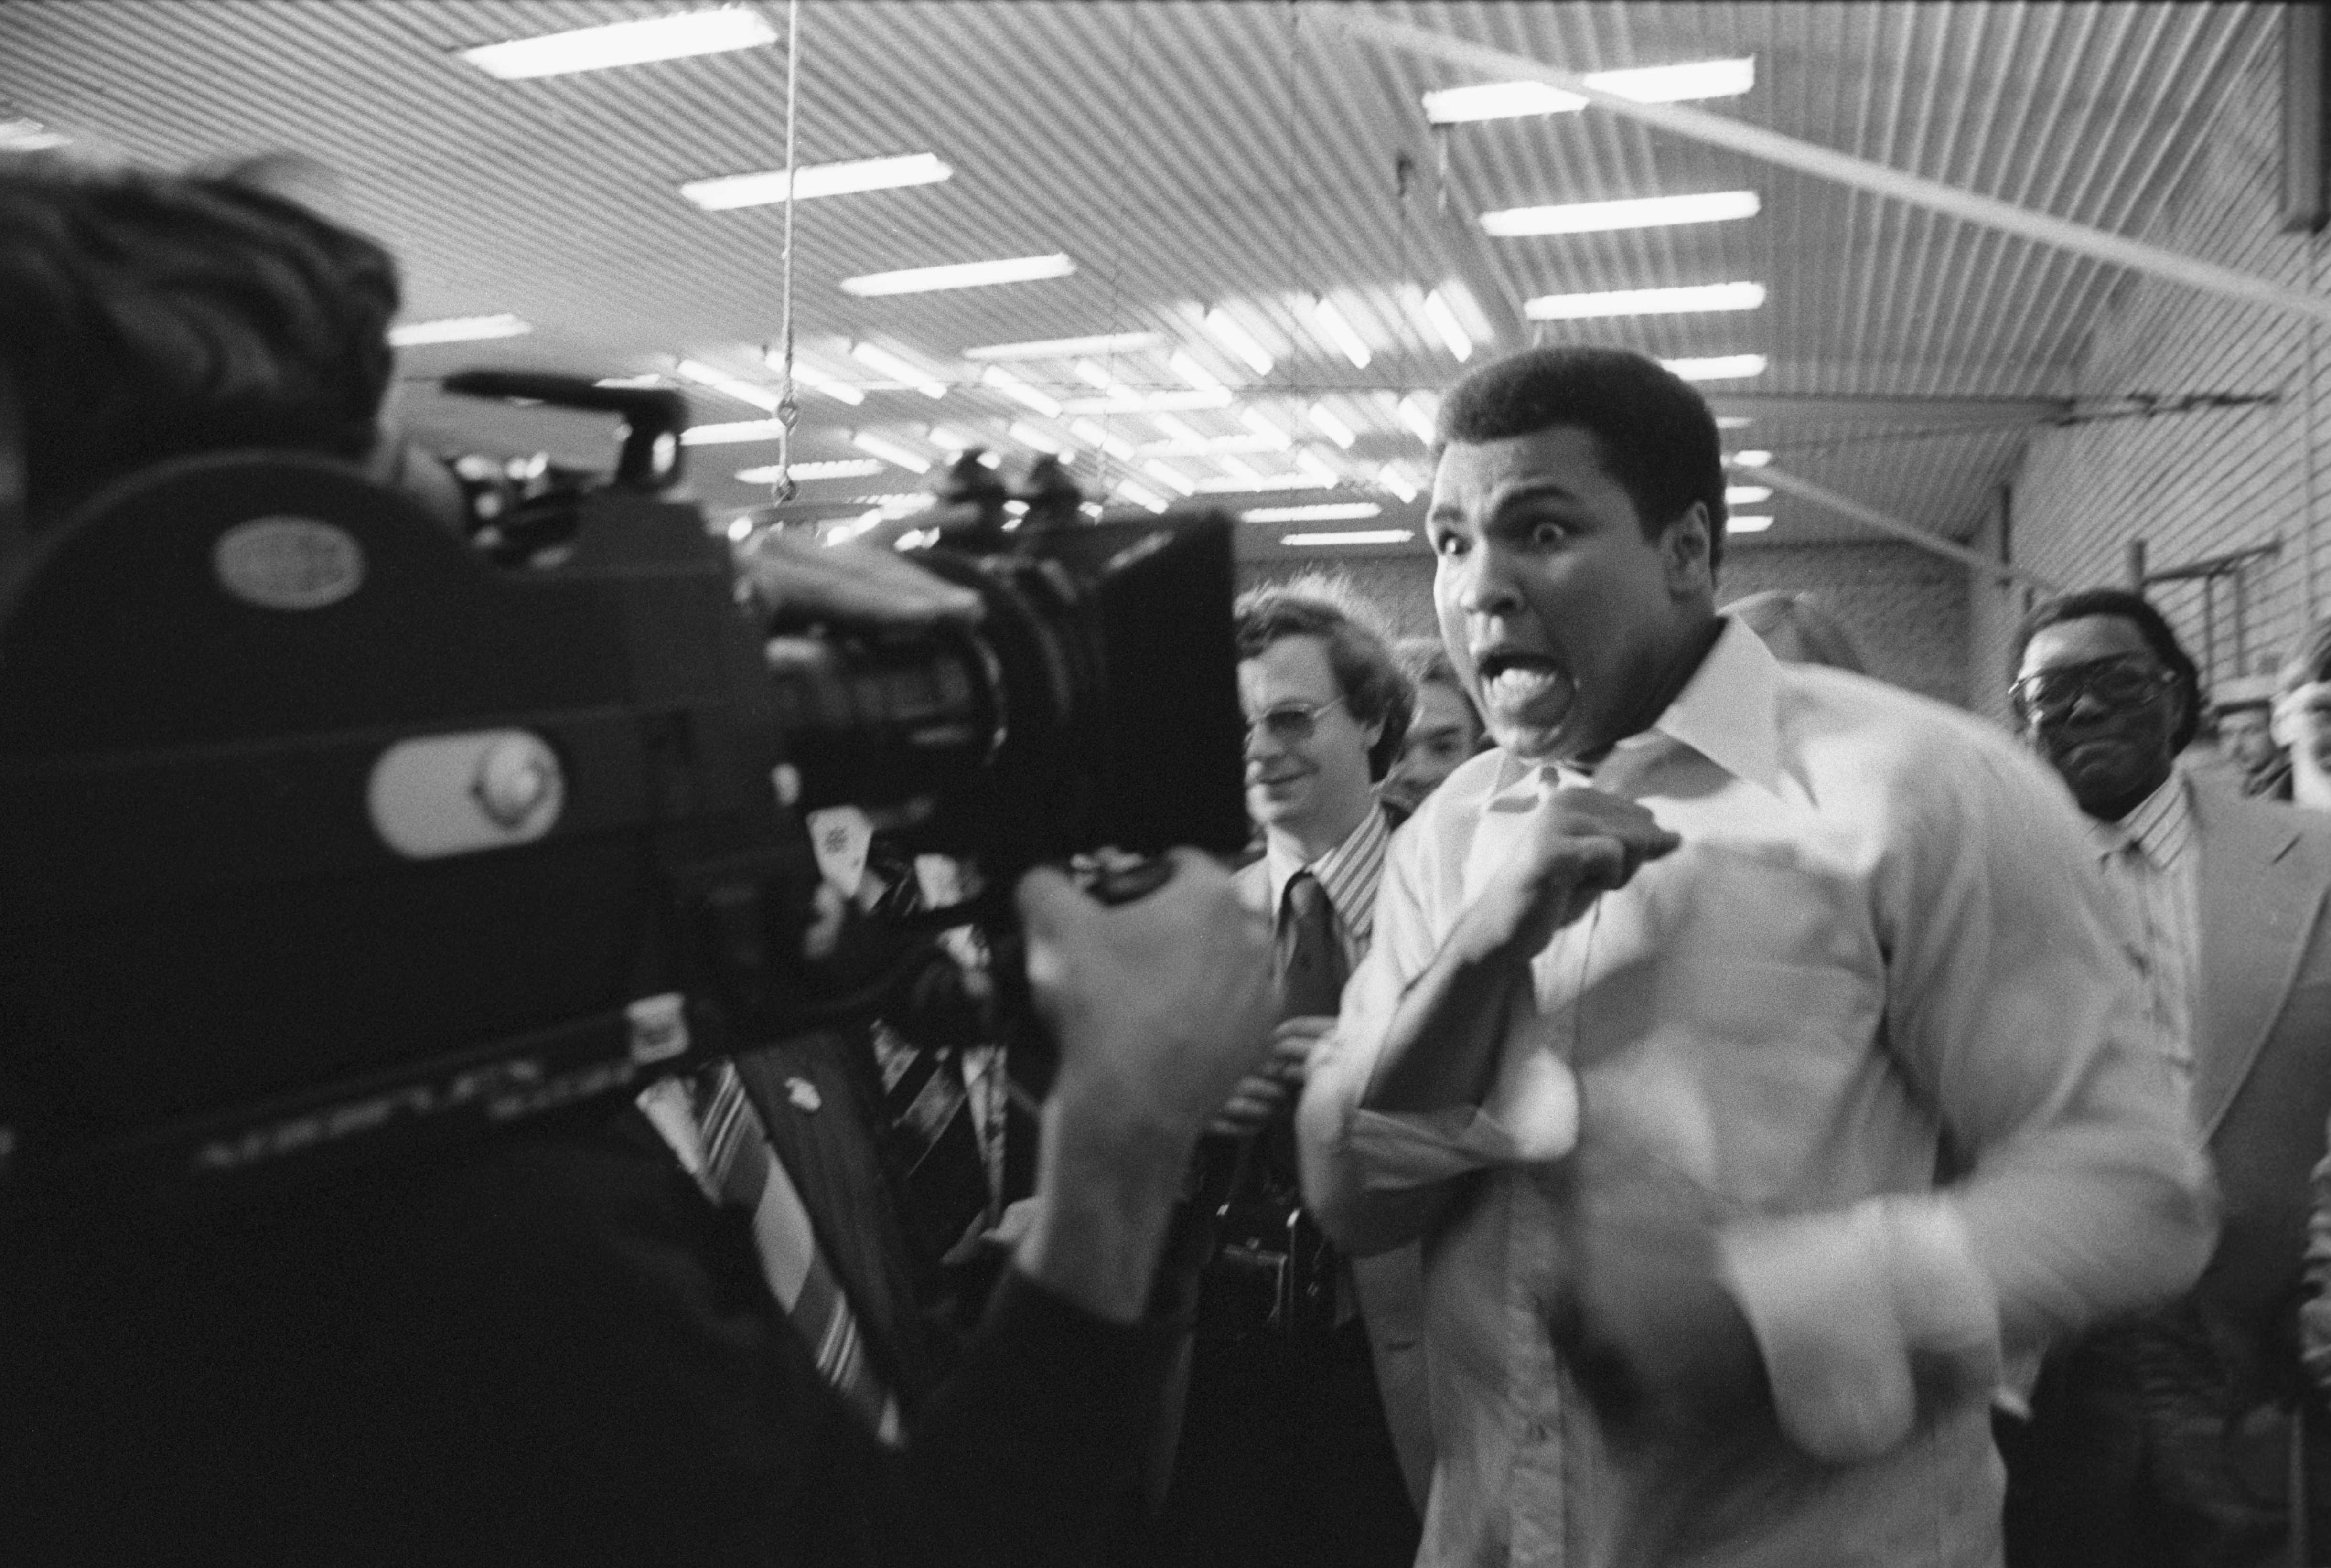 American legendary boxer Muhammad Ali (Cassius Marcellus Clay) visiting Moscow., Image: 86583435, License: Rights-managed, Restrictions: Vyat-K01_0320, Model Release: no, Credit line: Profimedia, Sputnik